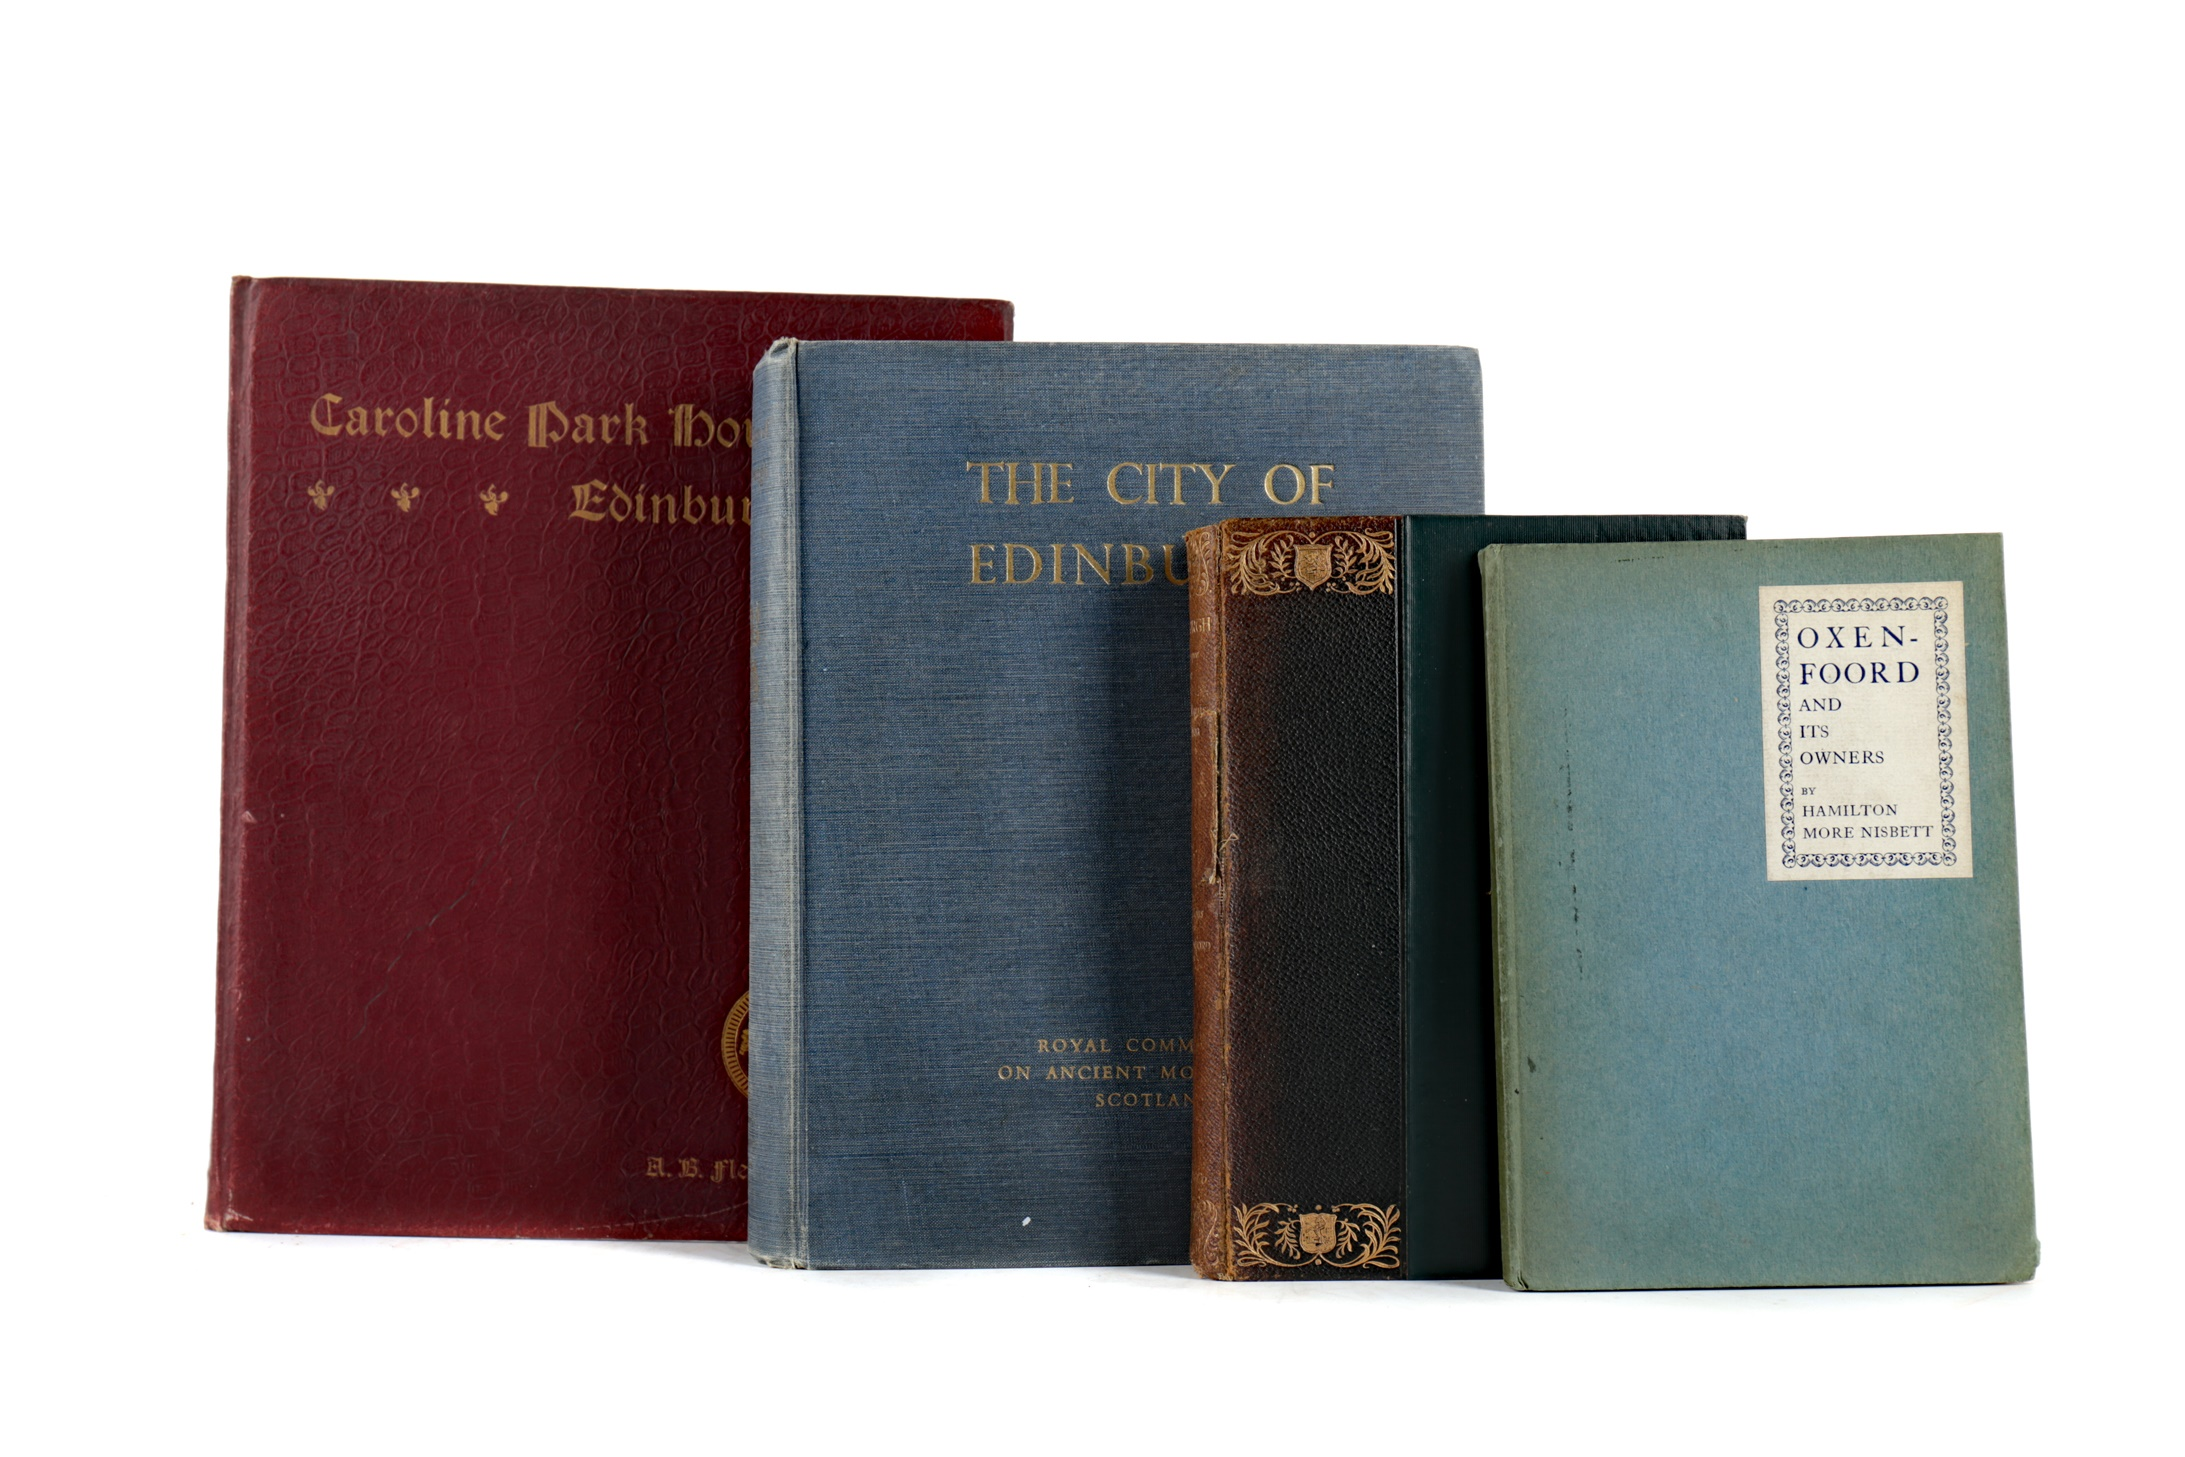 THE ROYAL COMMISSION ON THE ANCIENT MONUMENTS OF SCOTLAND AND THREE OTHER BOOKS